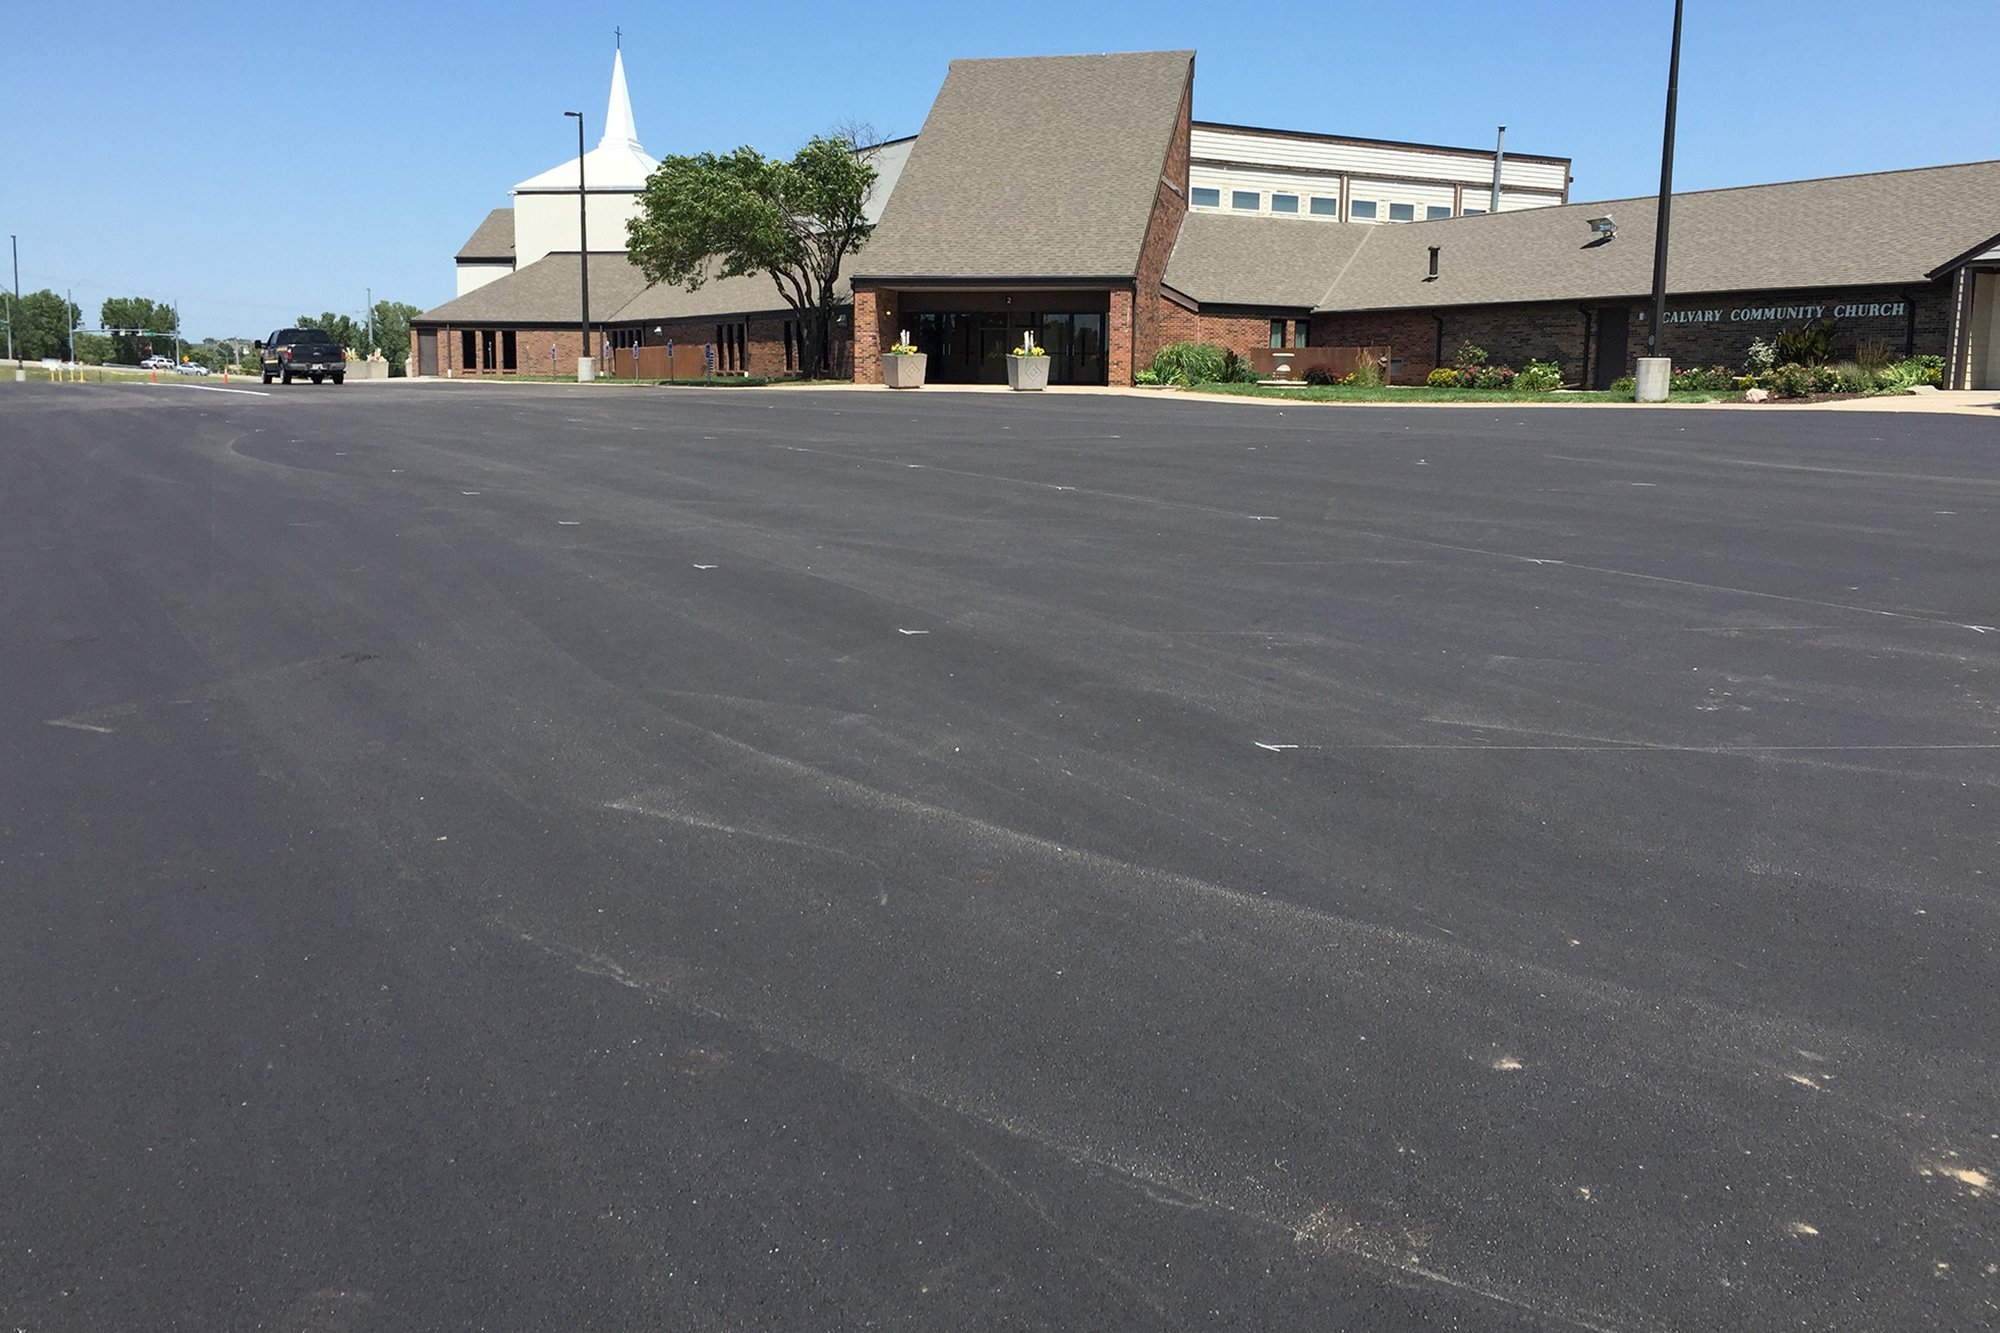 Lincoln Paving Asphalt Repair and Patching Lincoln Asphalt parking lot striping before4 - APMS Lincoln Paving Services